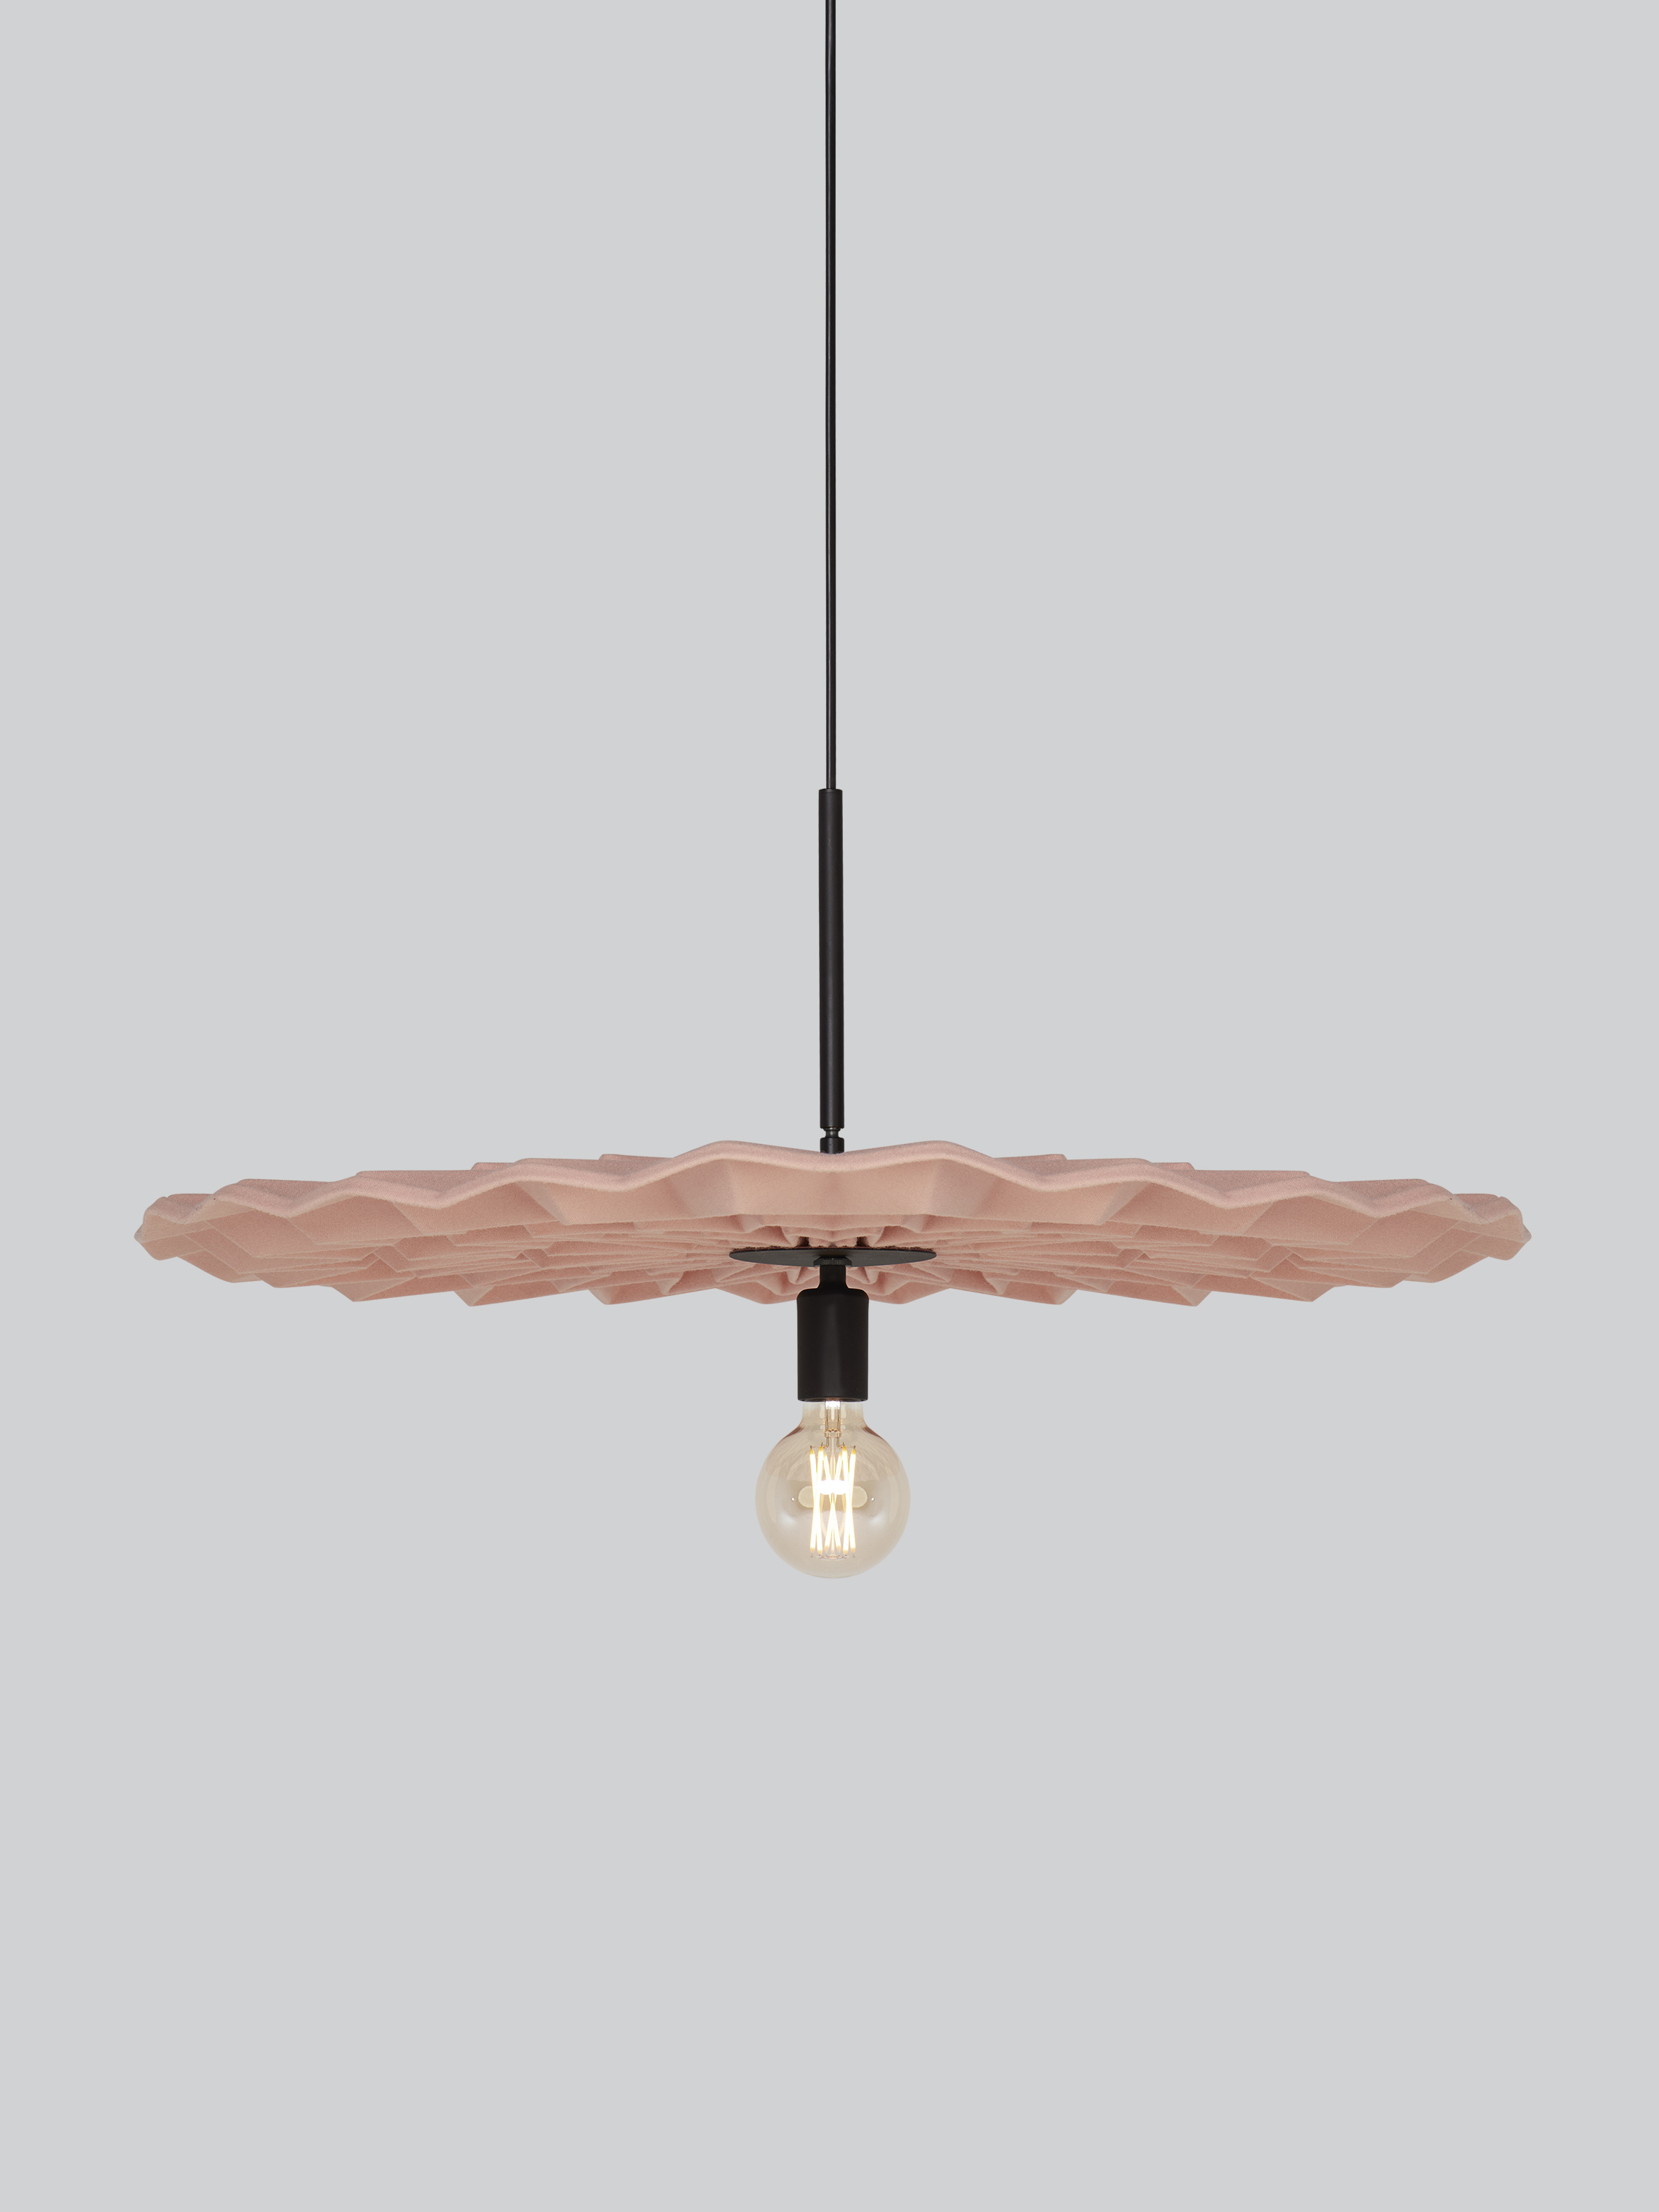 contempory lighting. Northern Lighting Has A New Contemporary Design3 Design Contempory